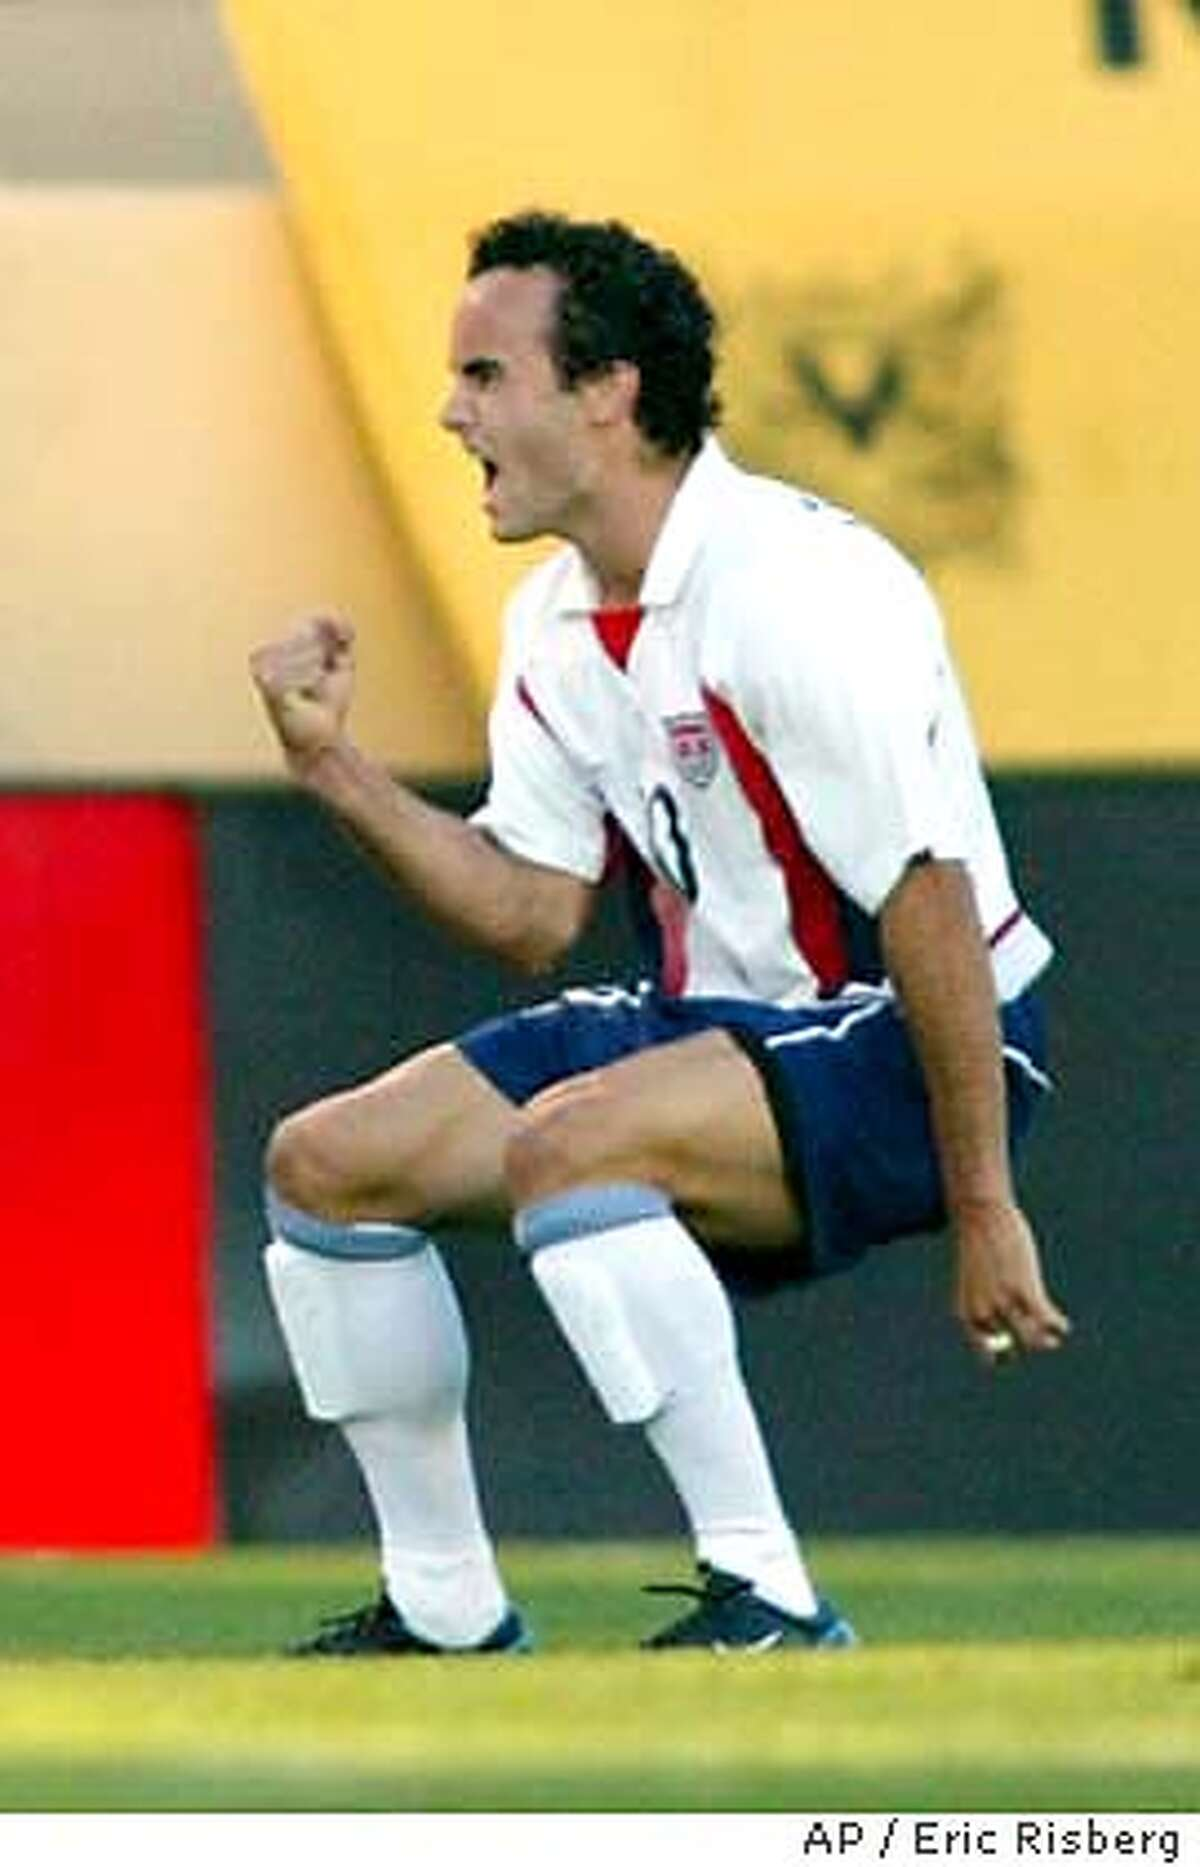 U.S. team forward Landon Donovan celebrates after scoring a penalty kick against Wales during the first half of their friendly match in San Jose, Calif., Monday May 26, 2003.(AP Photo/Eric Risberg) CAT